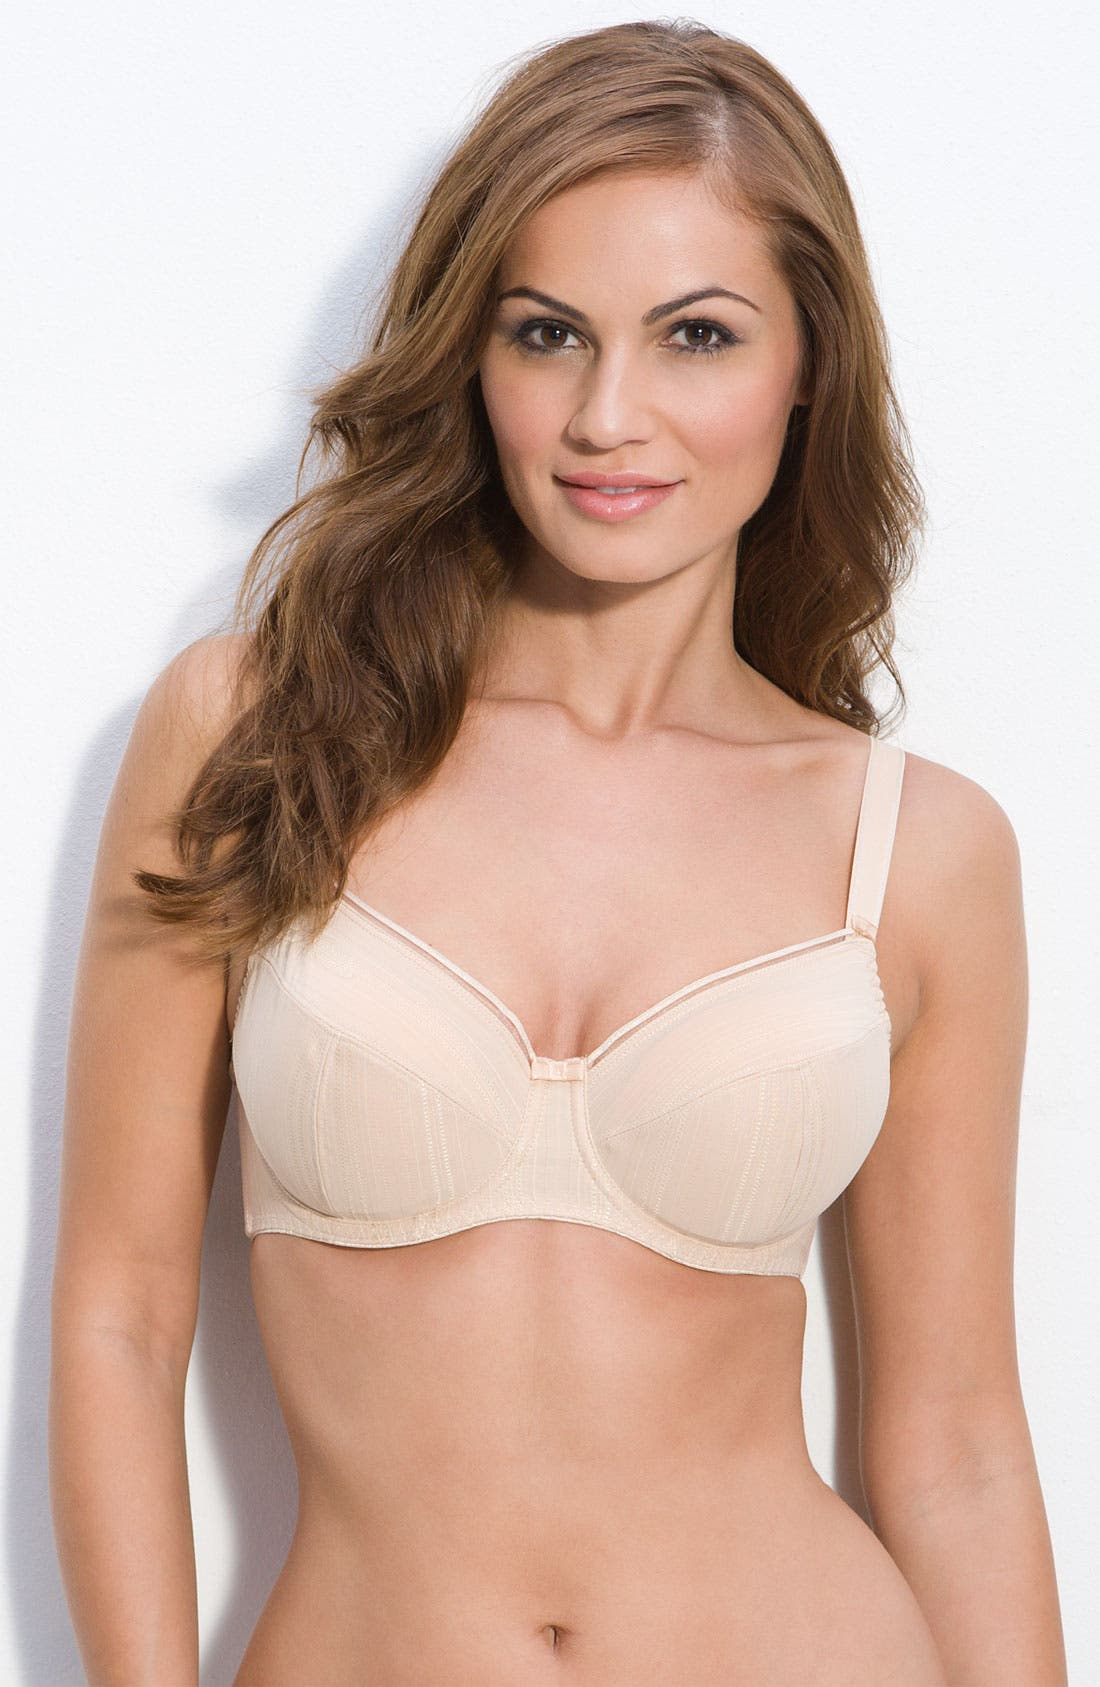 Alternate Image 1 Selected - Fantasie 'Serene' Full Cup Underwire Bra